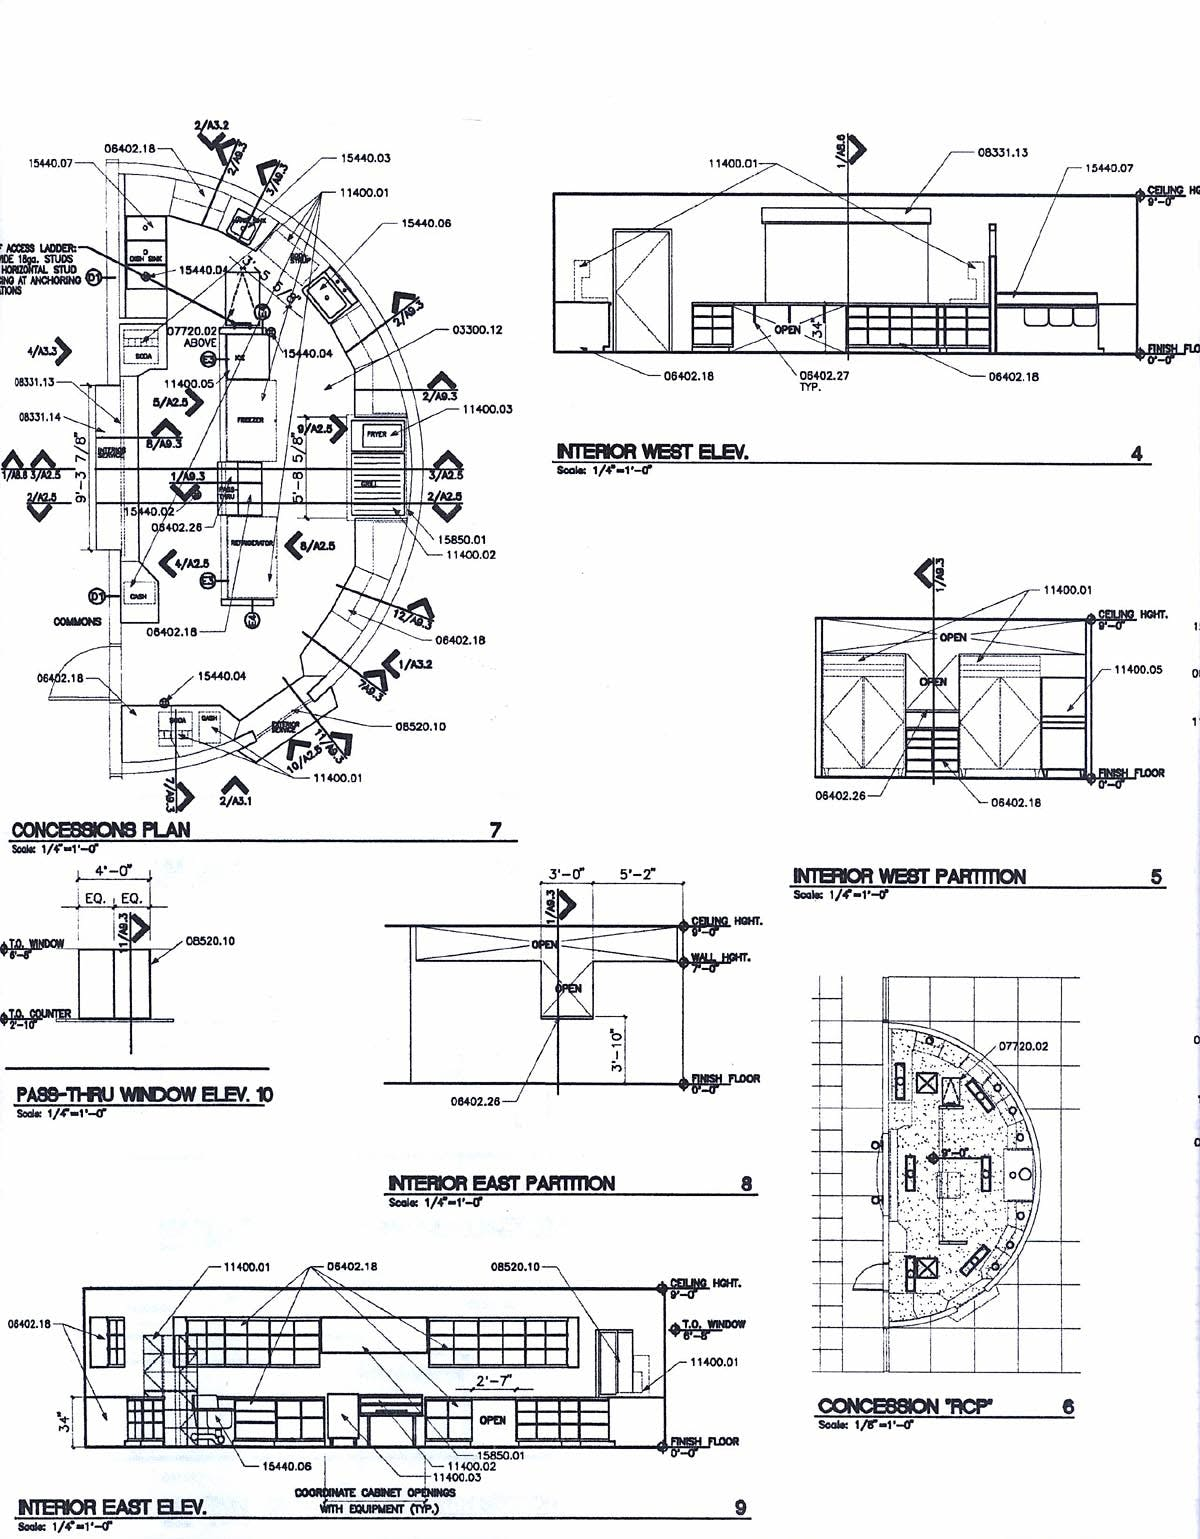 FMSM - Aquatic Center Project | Frederick W. Brink | Archinect